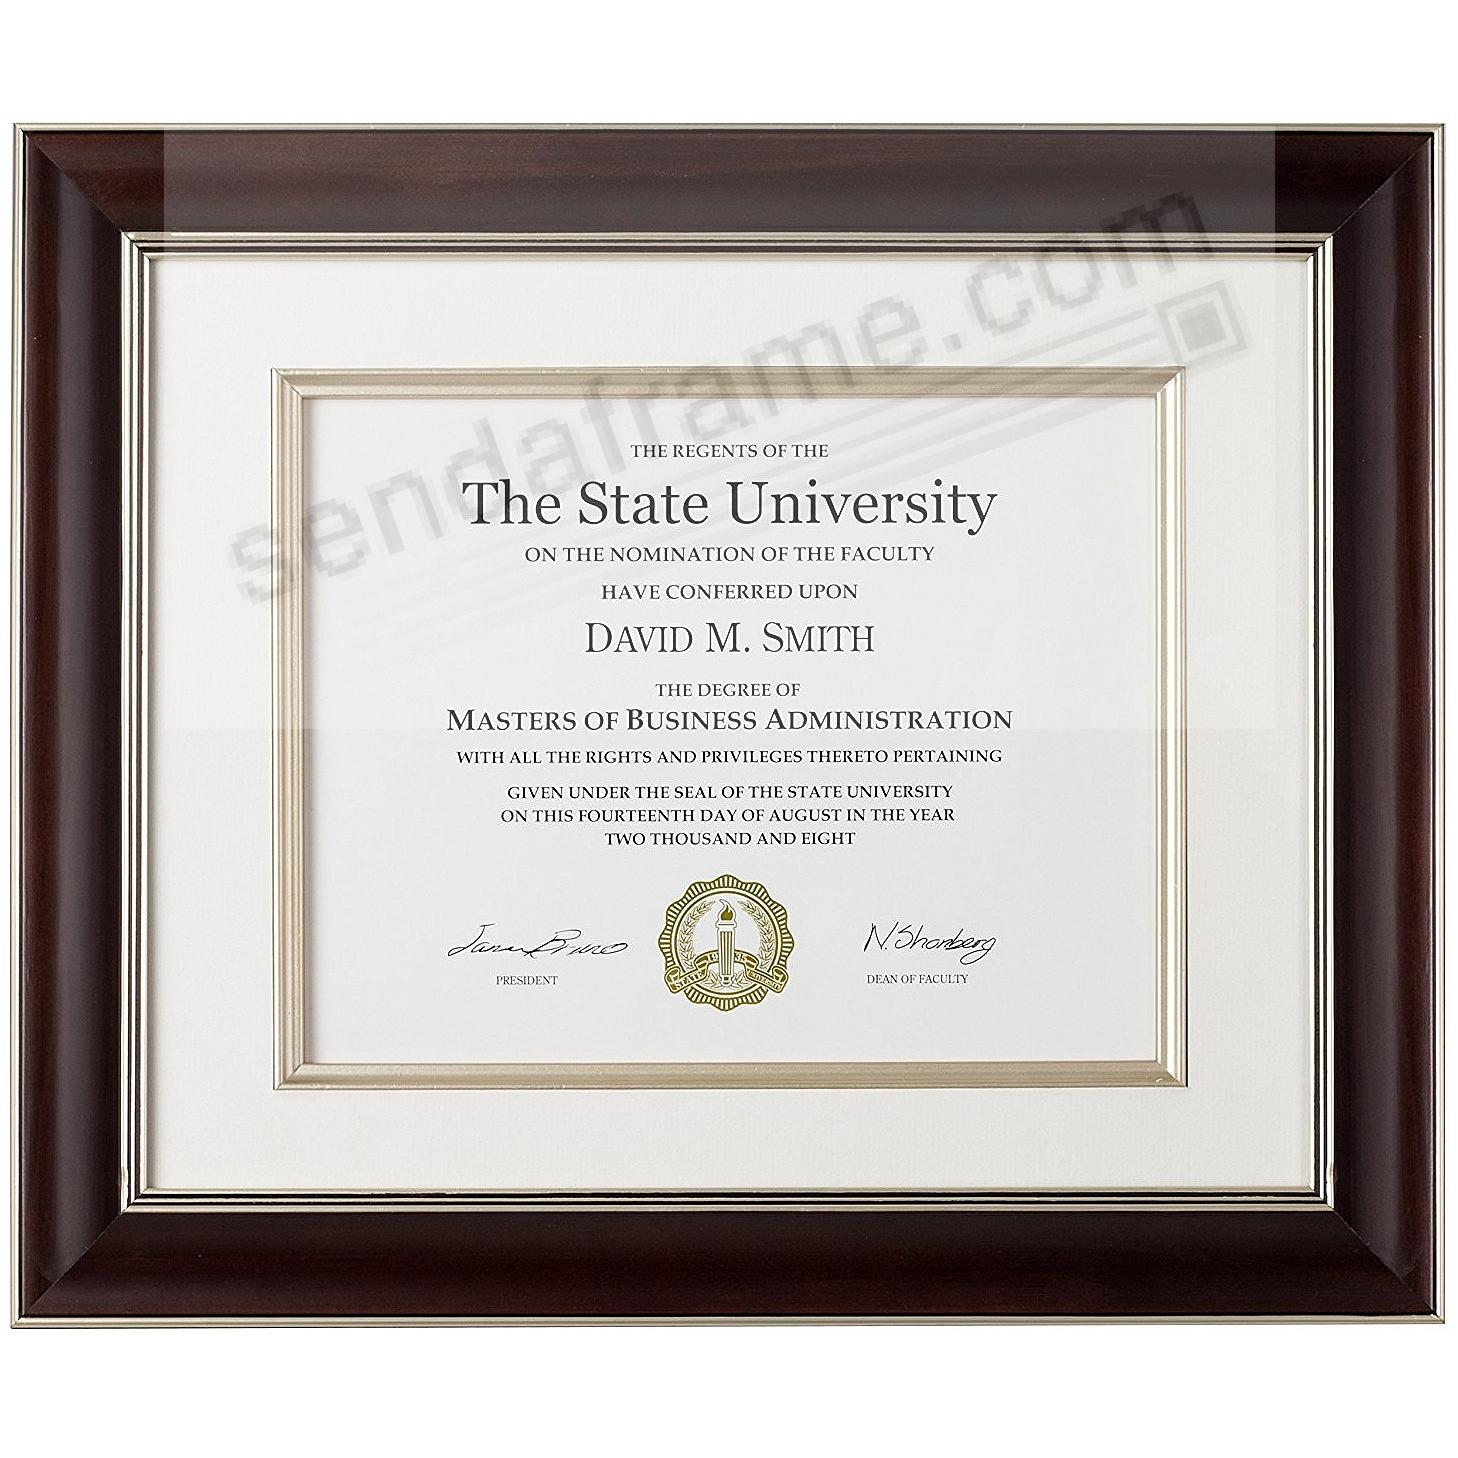 WALNUT/Champagne TUSCAN Wood Certificate frame Matted 15x12/11x8½ by ARTCARE®